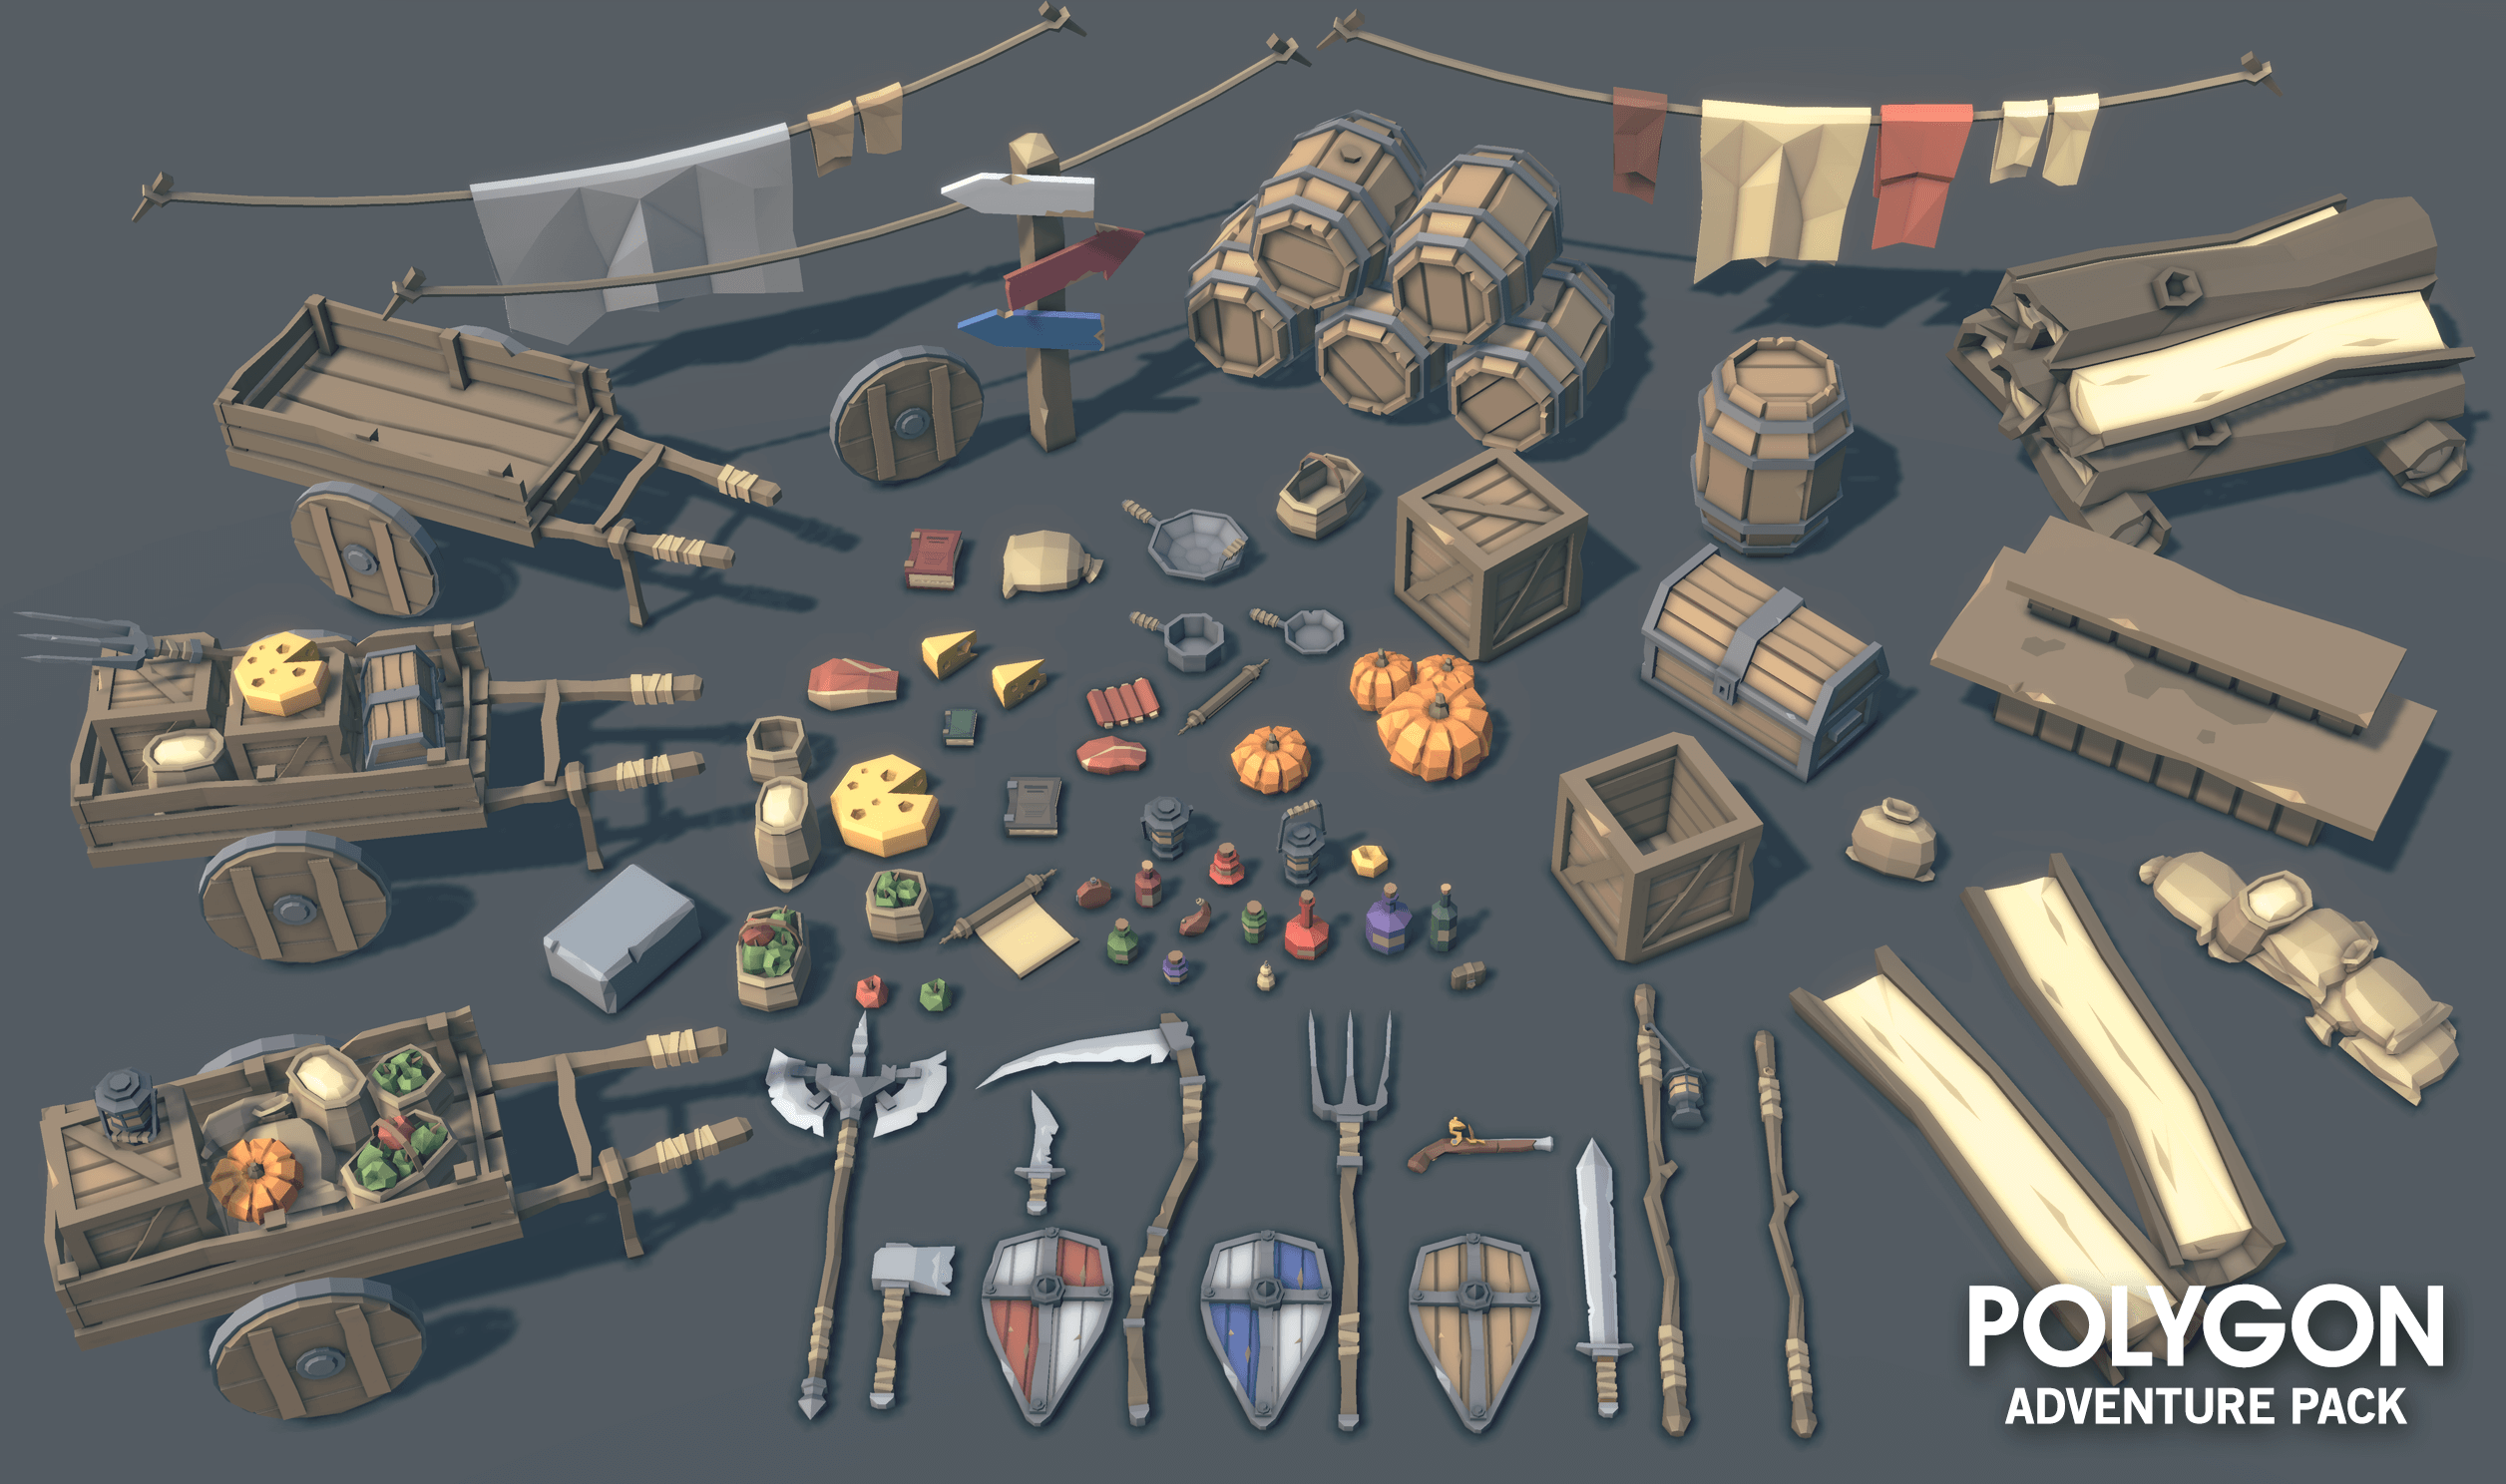 POLYGON Adventure Pack by Synty Studios in Environments